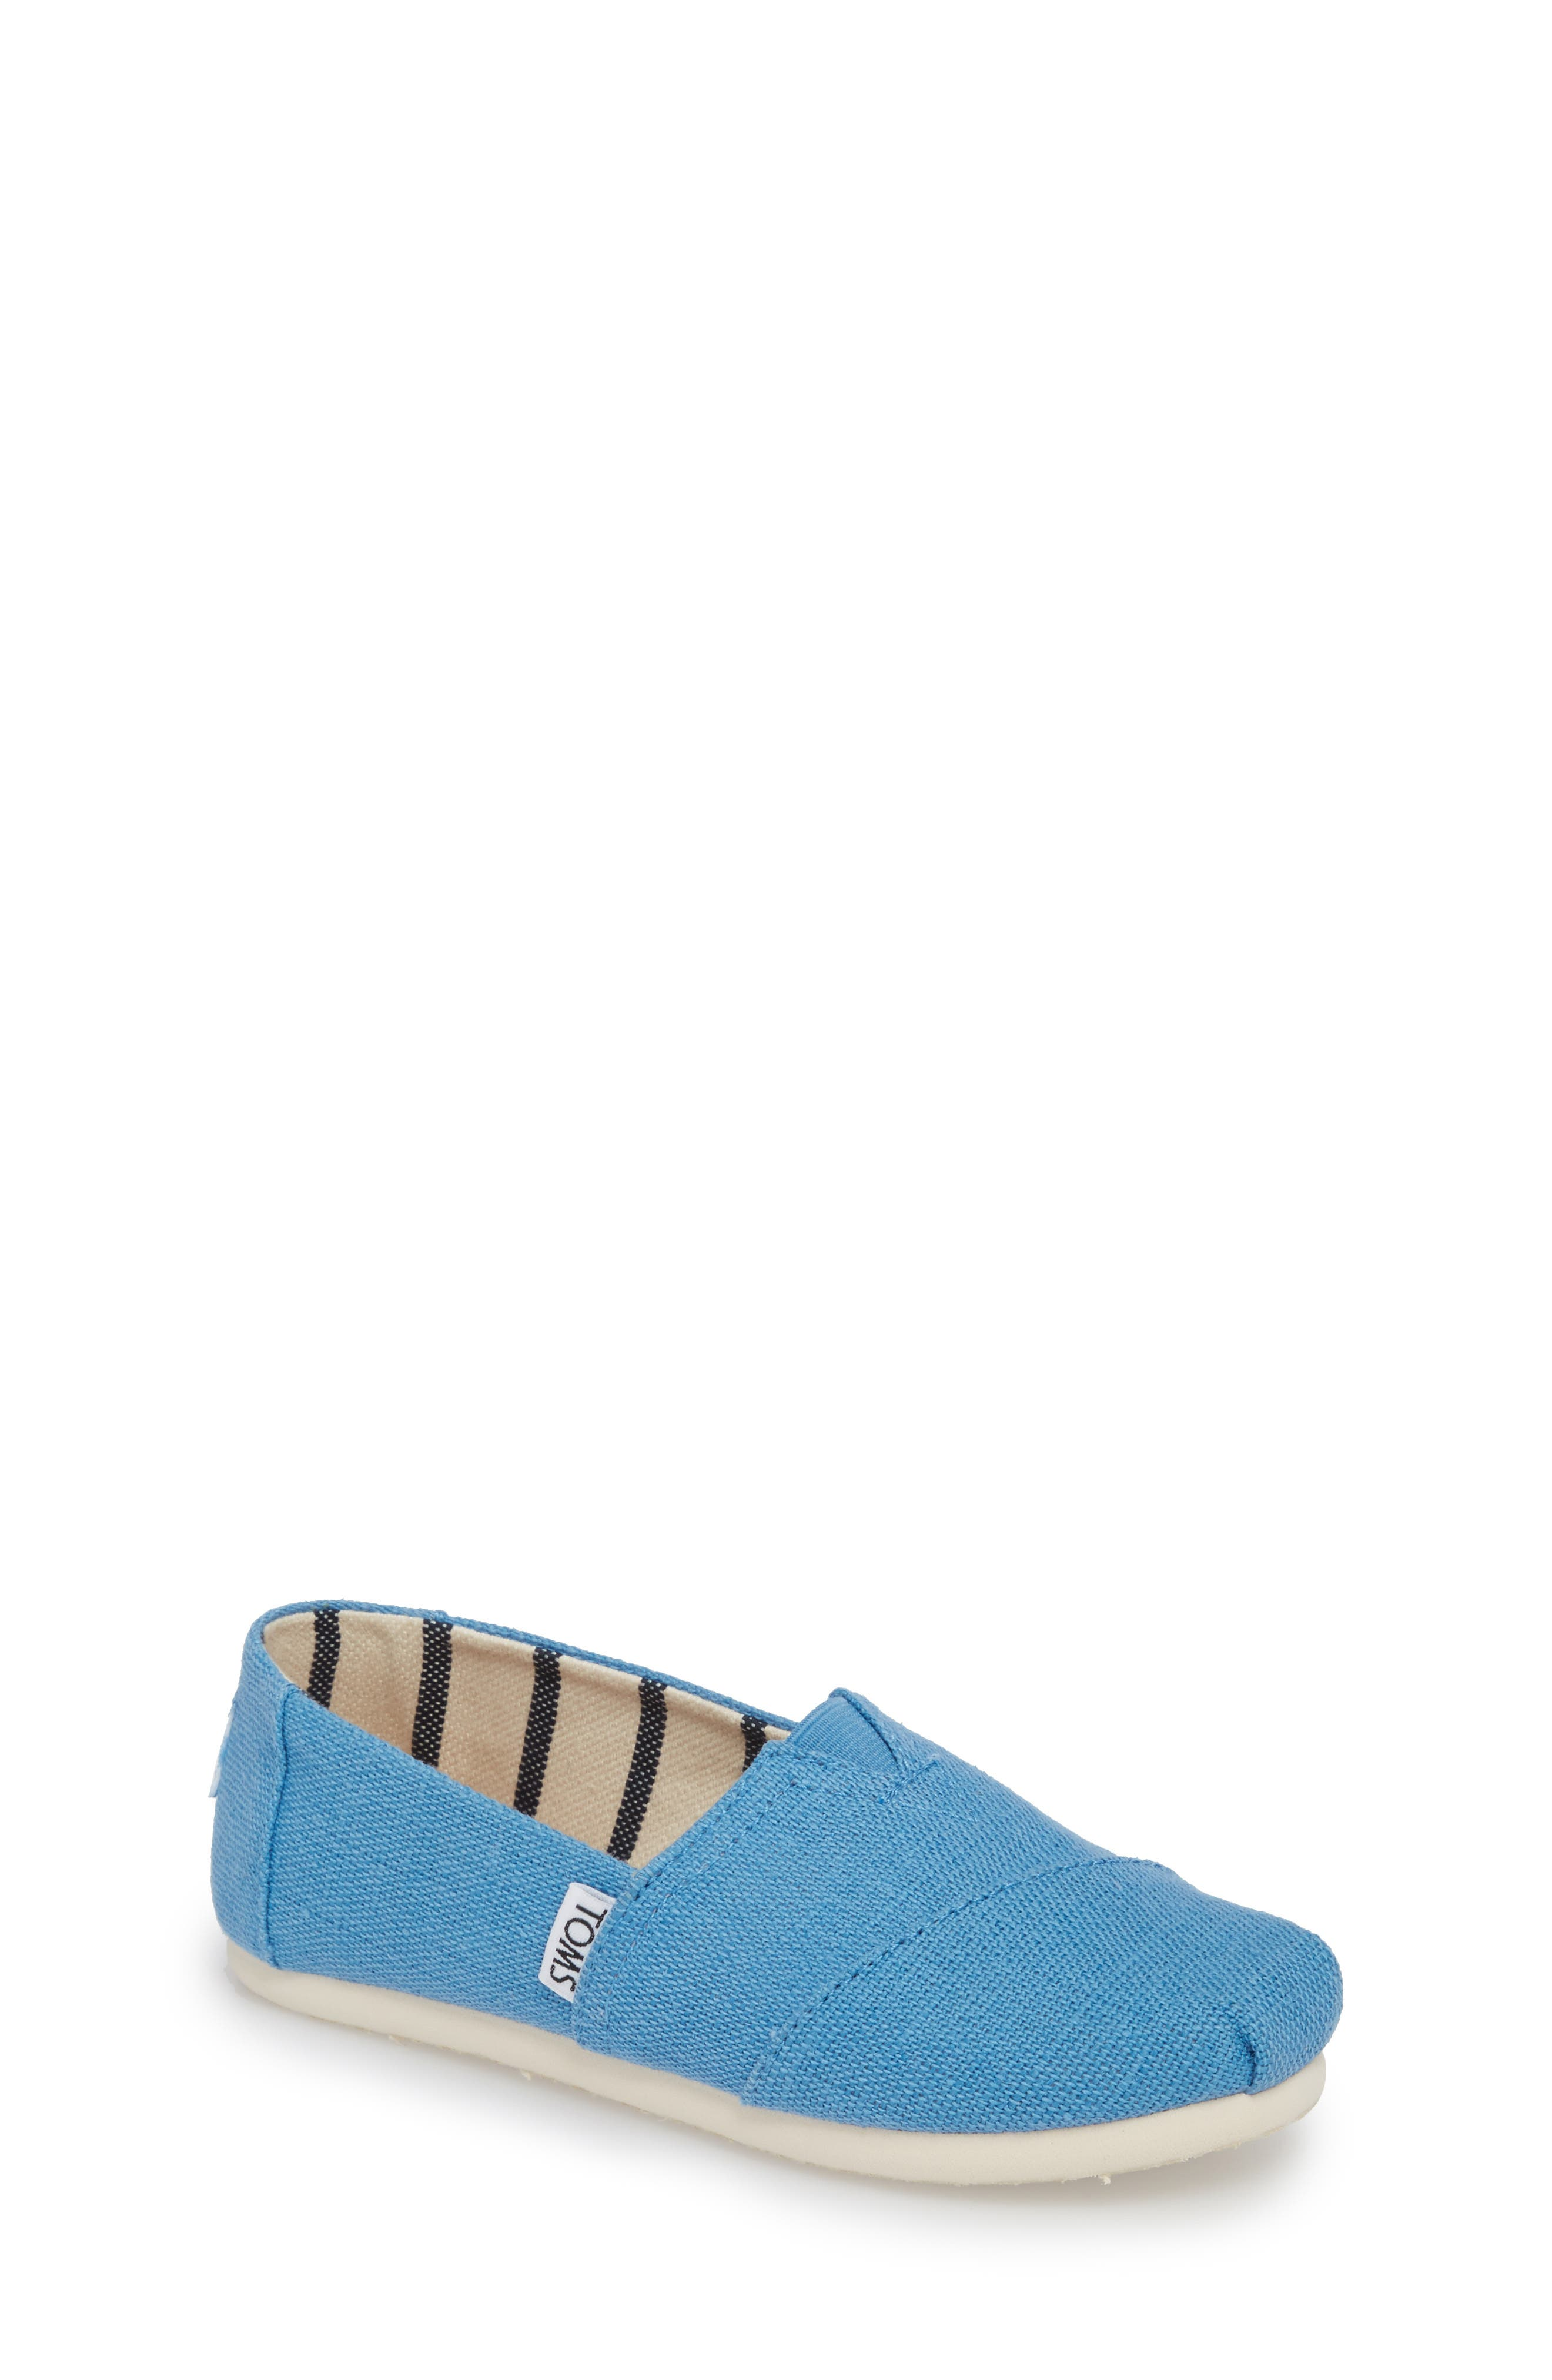 Classic Print Slip-On,                             Main thumbnail 1, color,                             CLEAR SKY HERITAGE CANVAS